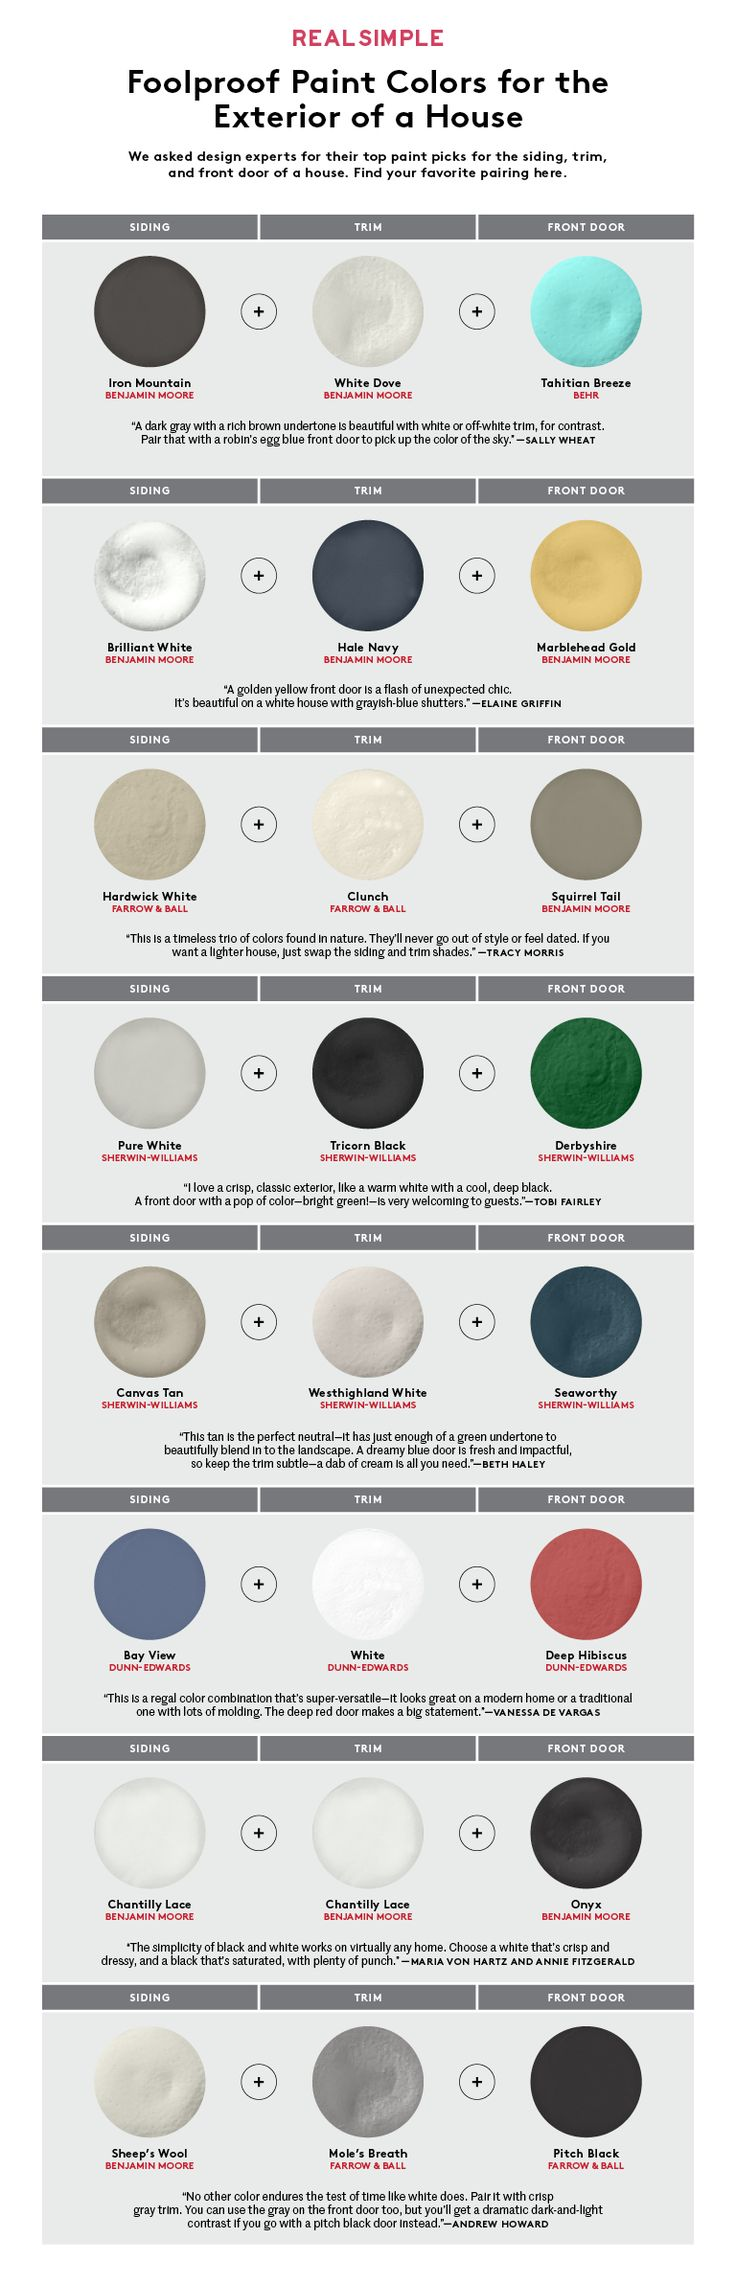 Exterior house paint colors 7 no fail ideas bob vila - Exterior Paint Infographic